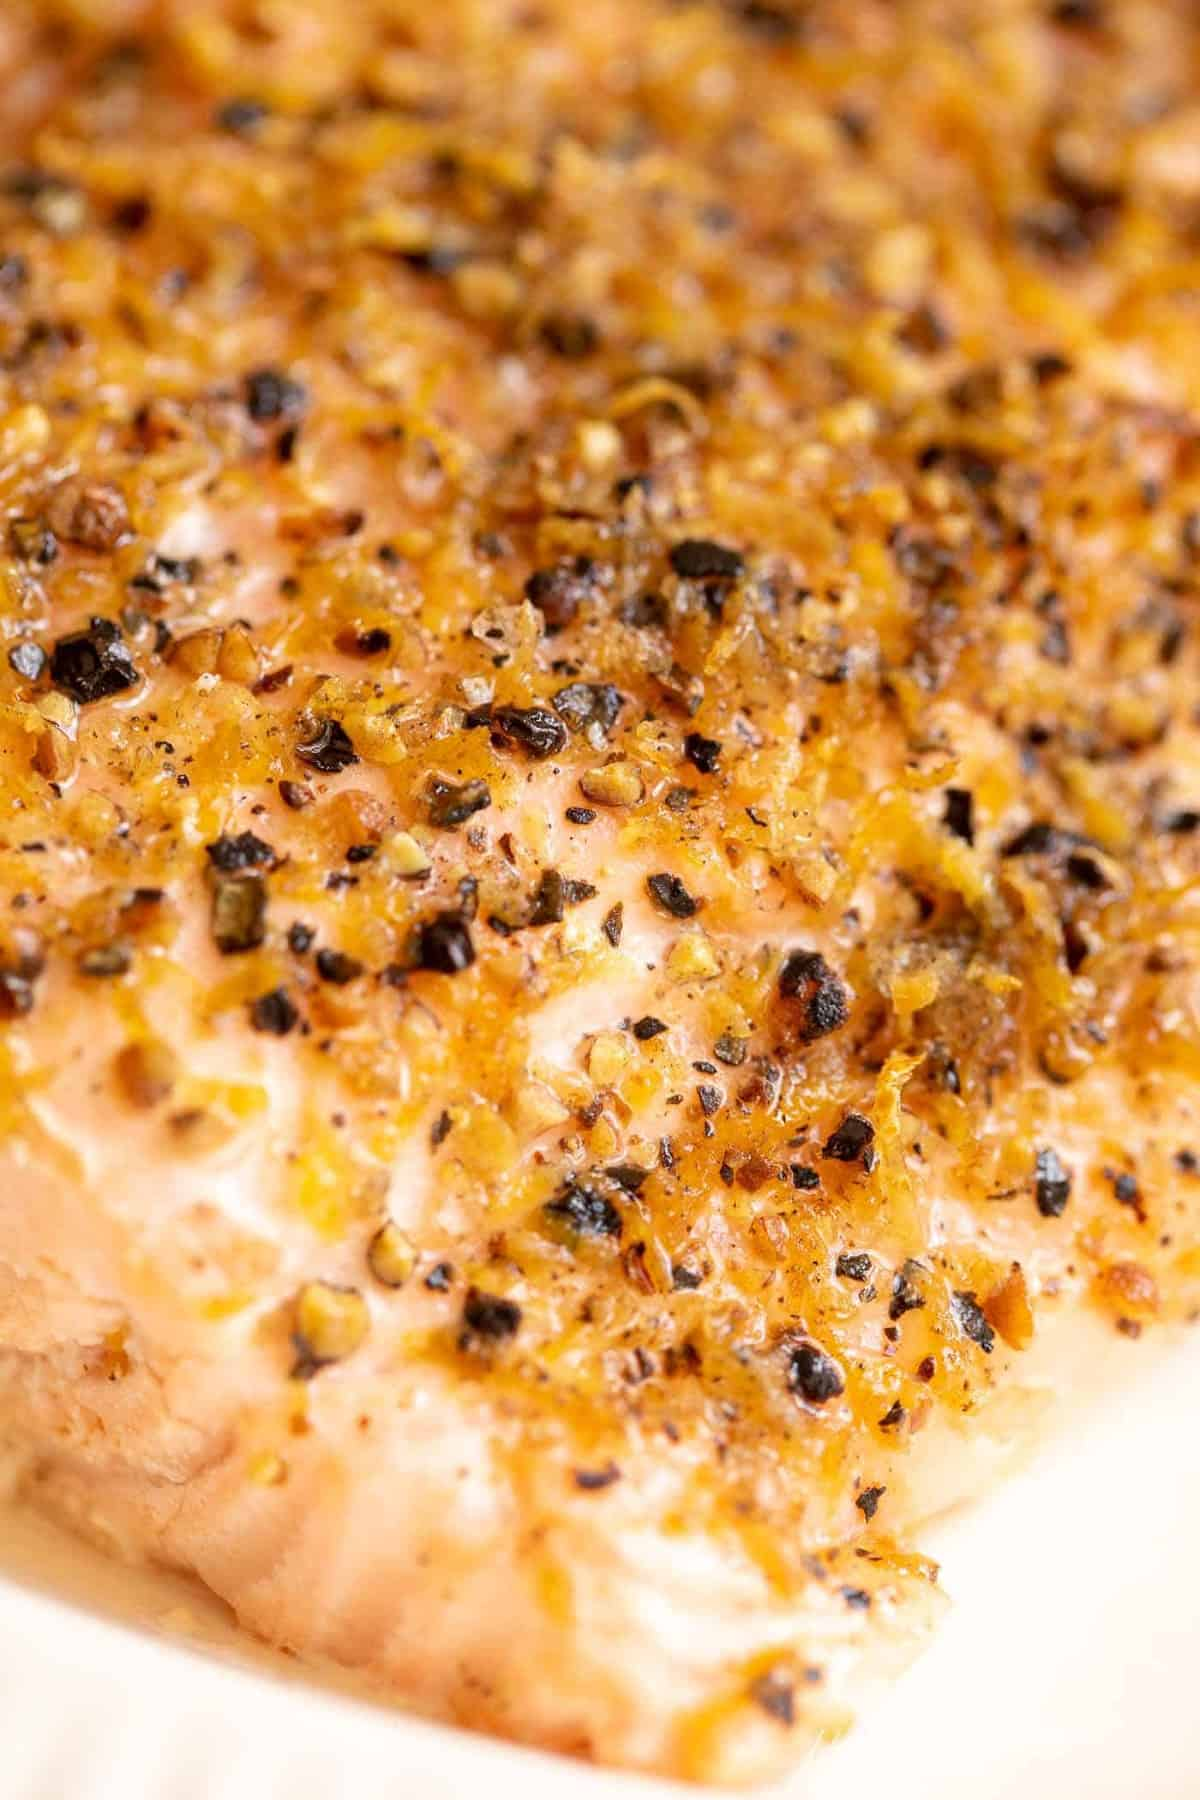 A close up shot of a fillet of lemon pepper salmon recipe.